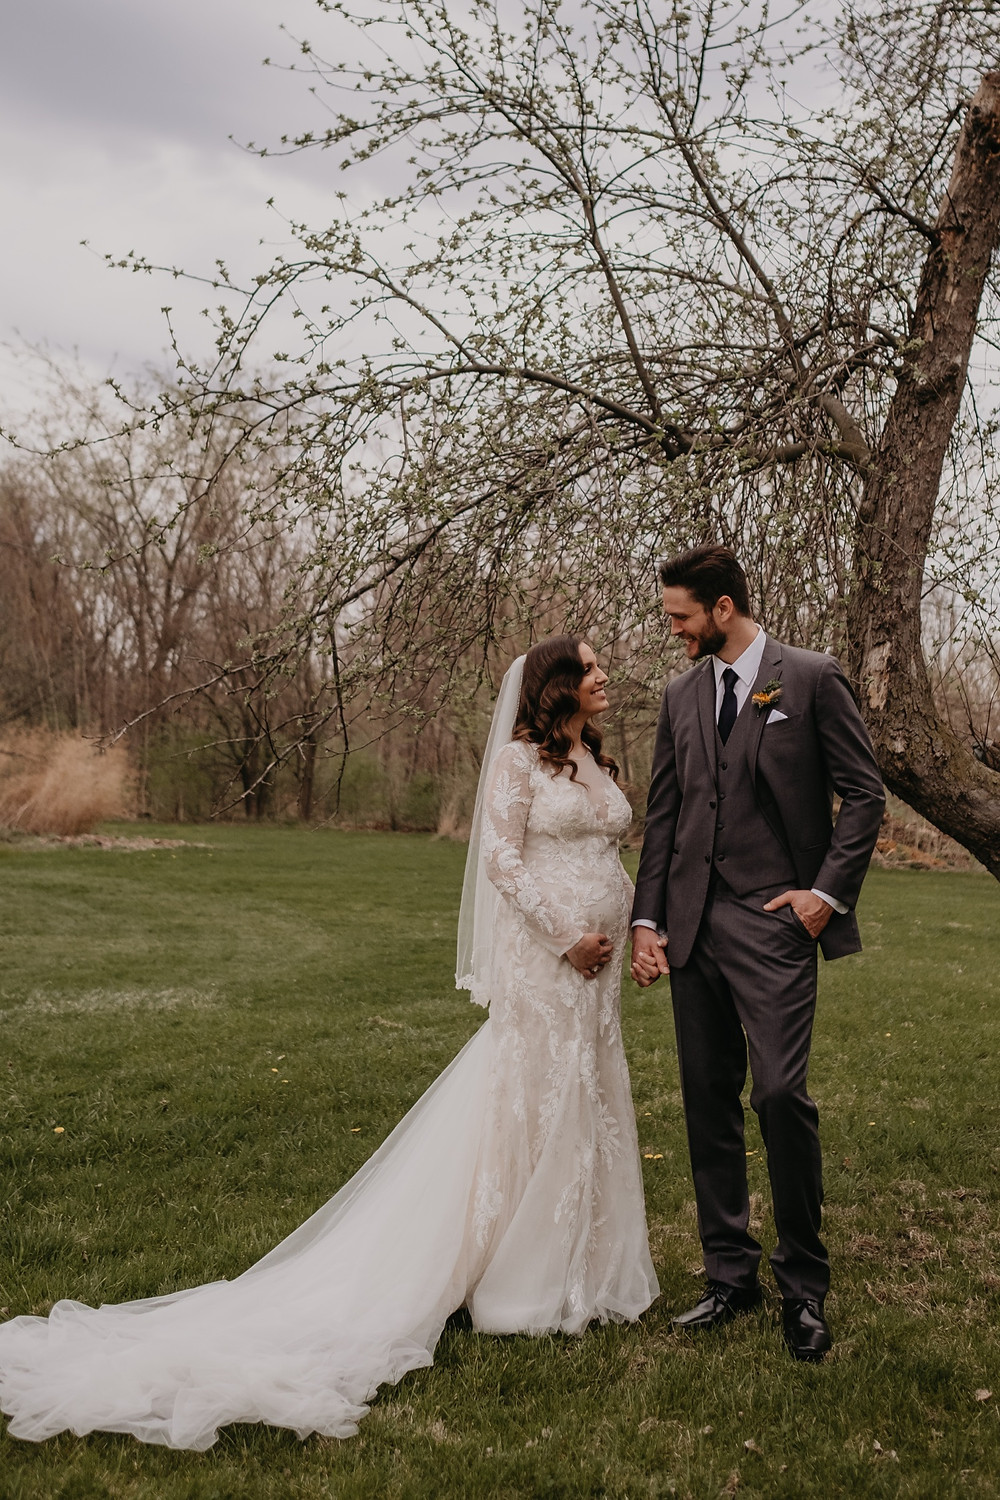 Metro Detroit wedding photos at Graye's Greenhouse. Photographed by Nicole Leanne Photography.